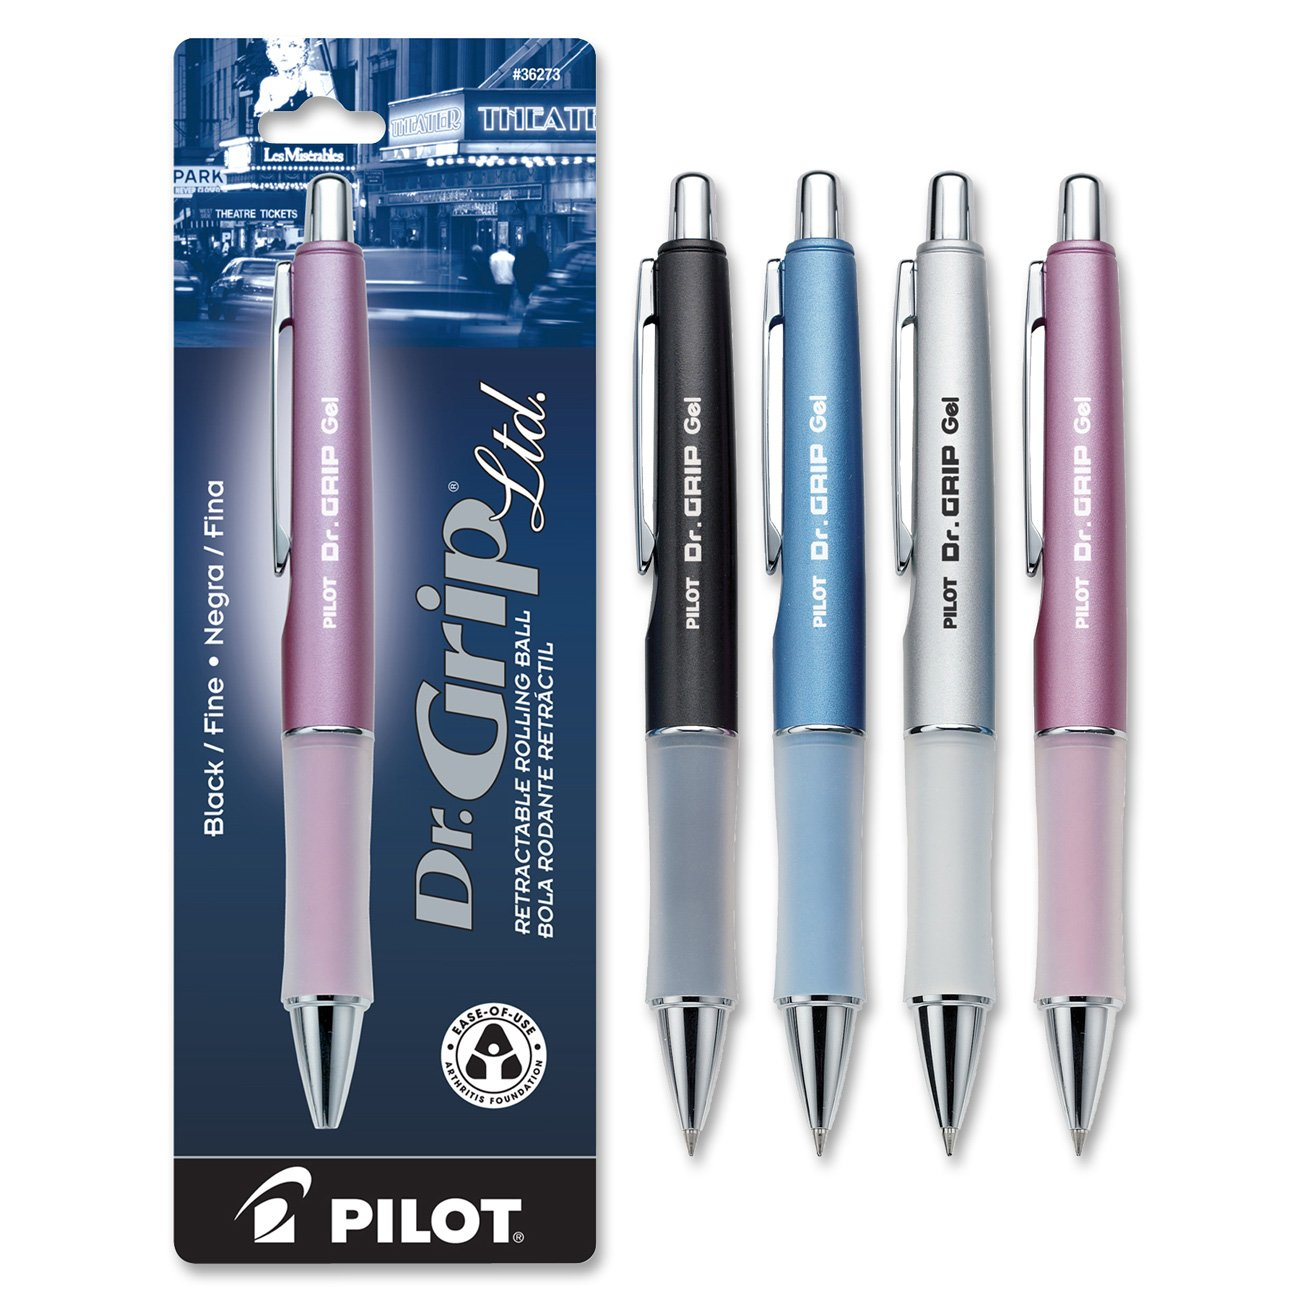 Pilot Dr. Grip Limited Retractable Rolling Ball Gel Pen, Fine Point, Barrel Color May Vary, Black Ink (36274)